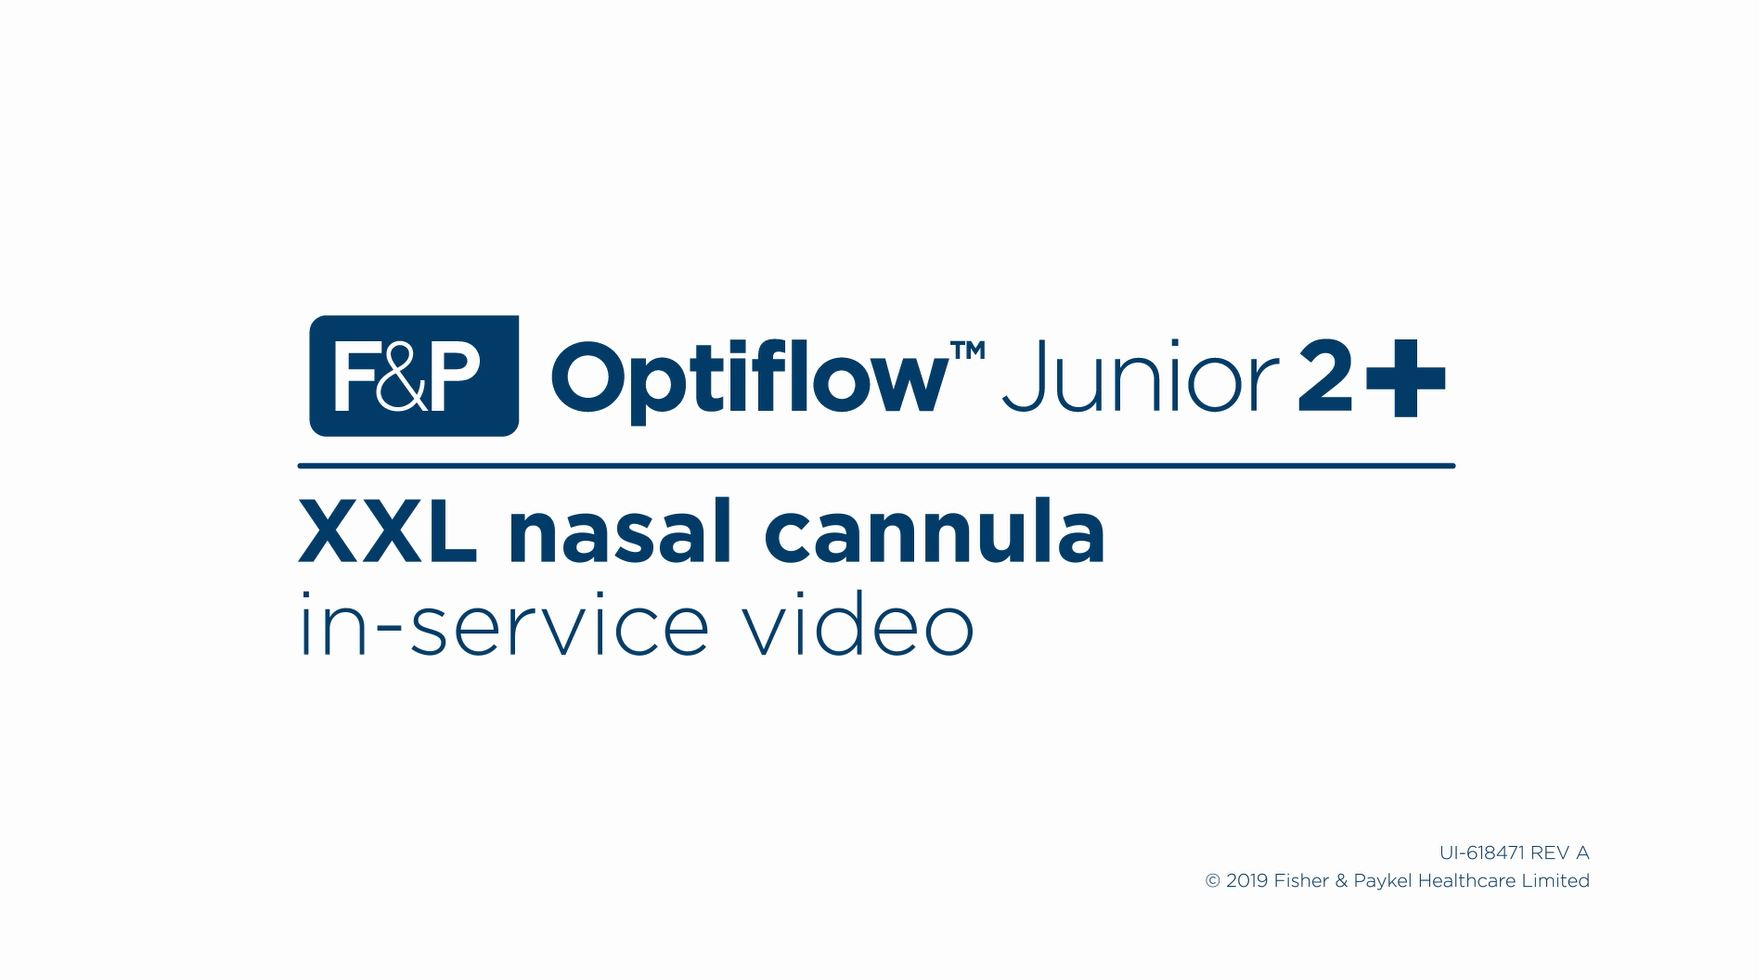 Optiflow Junior 2 XXL In-Service Video